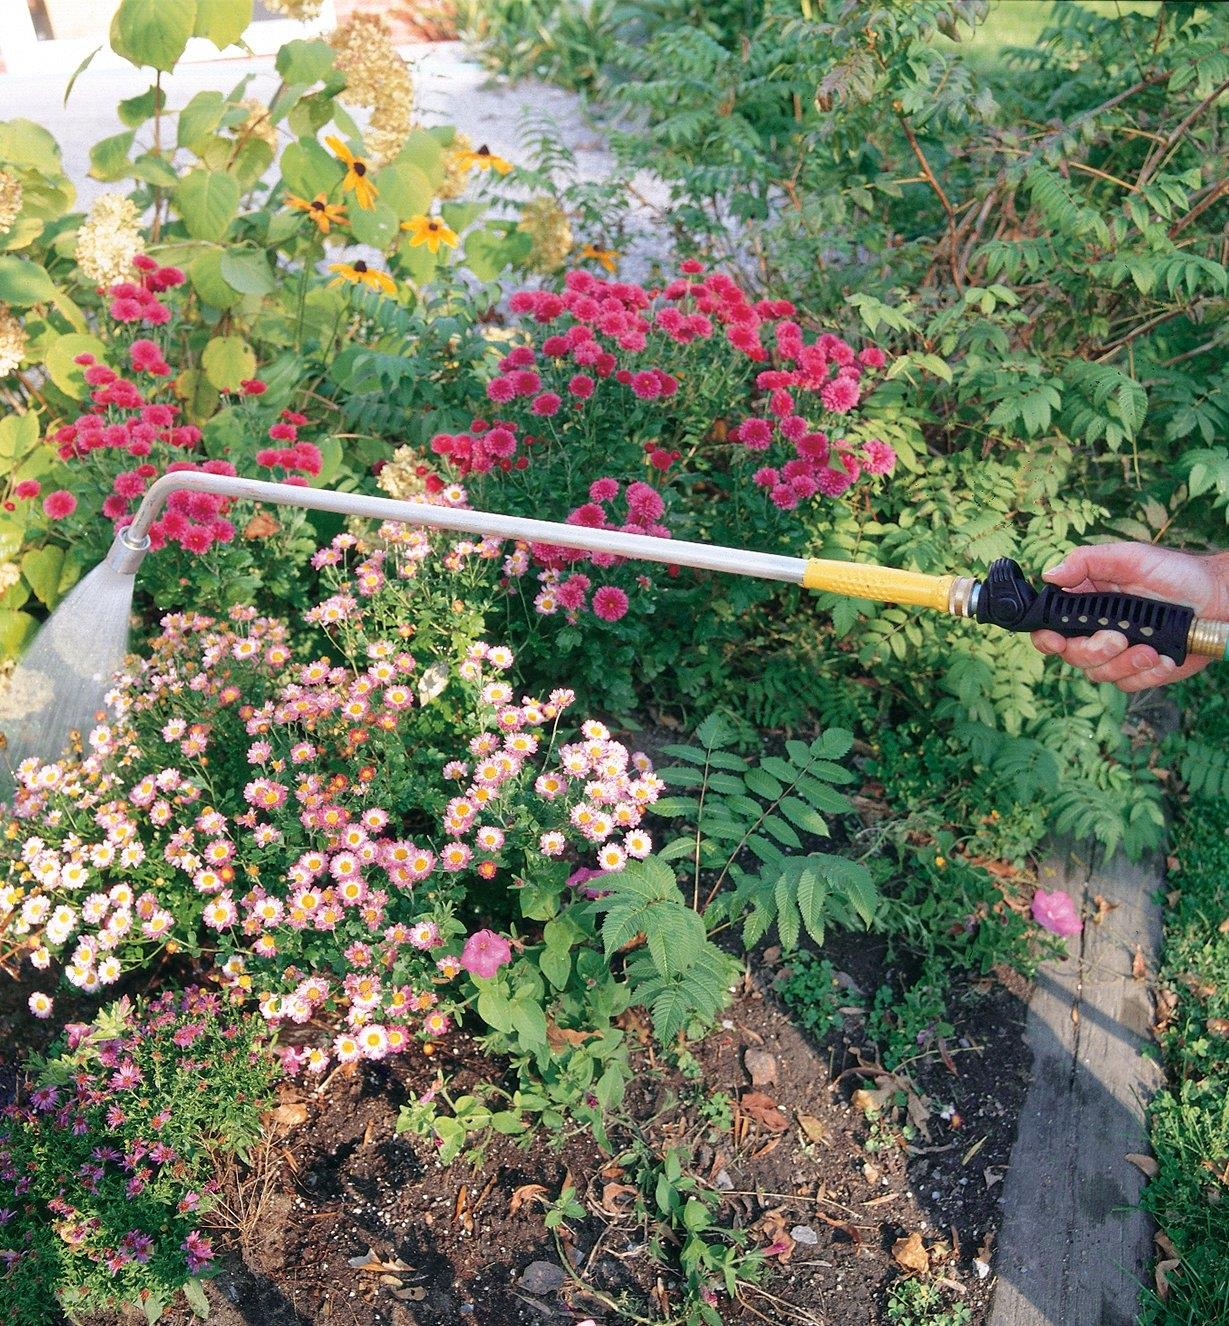 Spraying flowers in a garden with the Water Wand